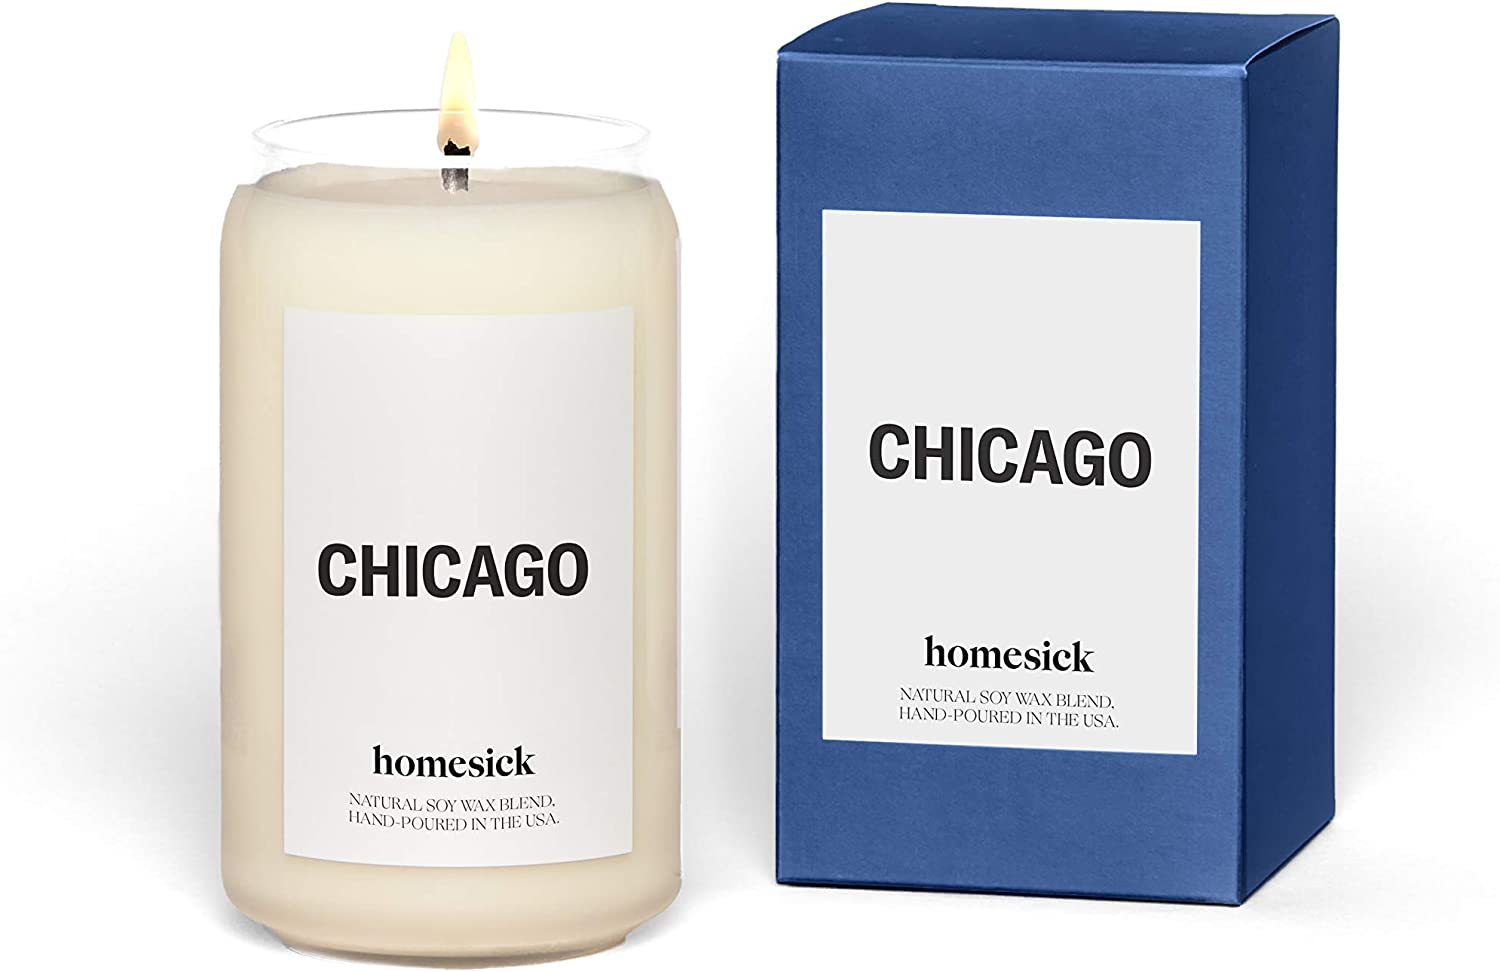 Homesick Scented Candle, Chicago (2020 Version)